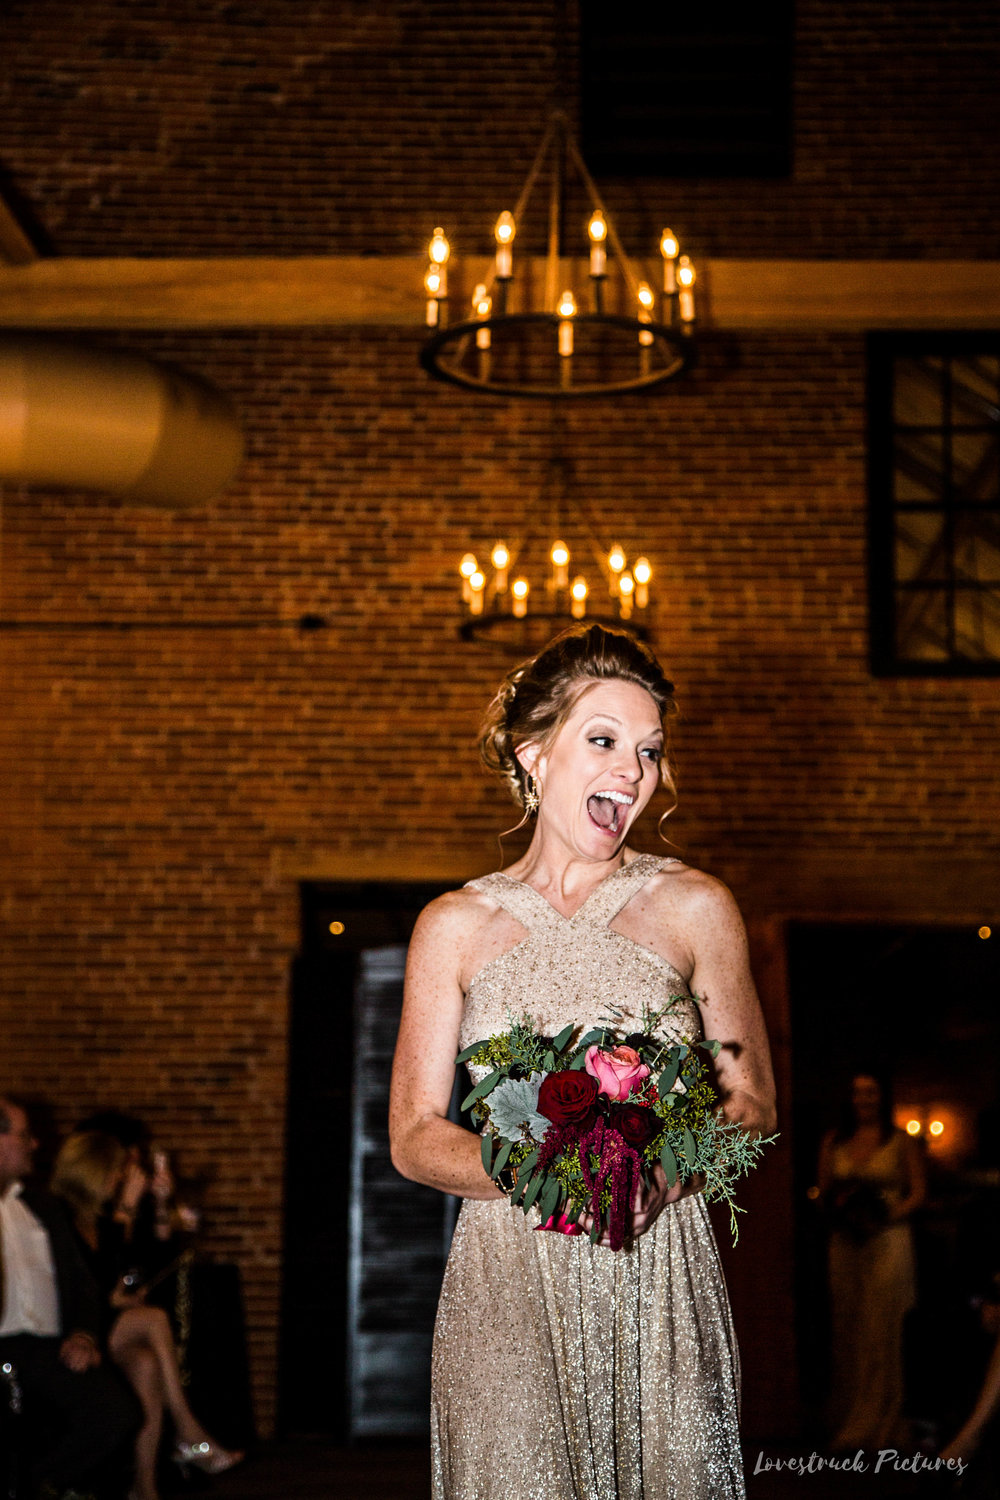 CORK_FACTORY_WEDDING_LANCASTER--278.jpg